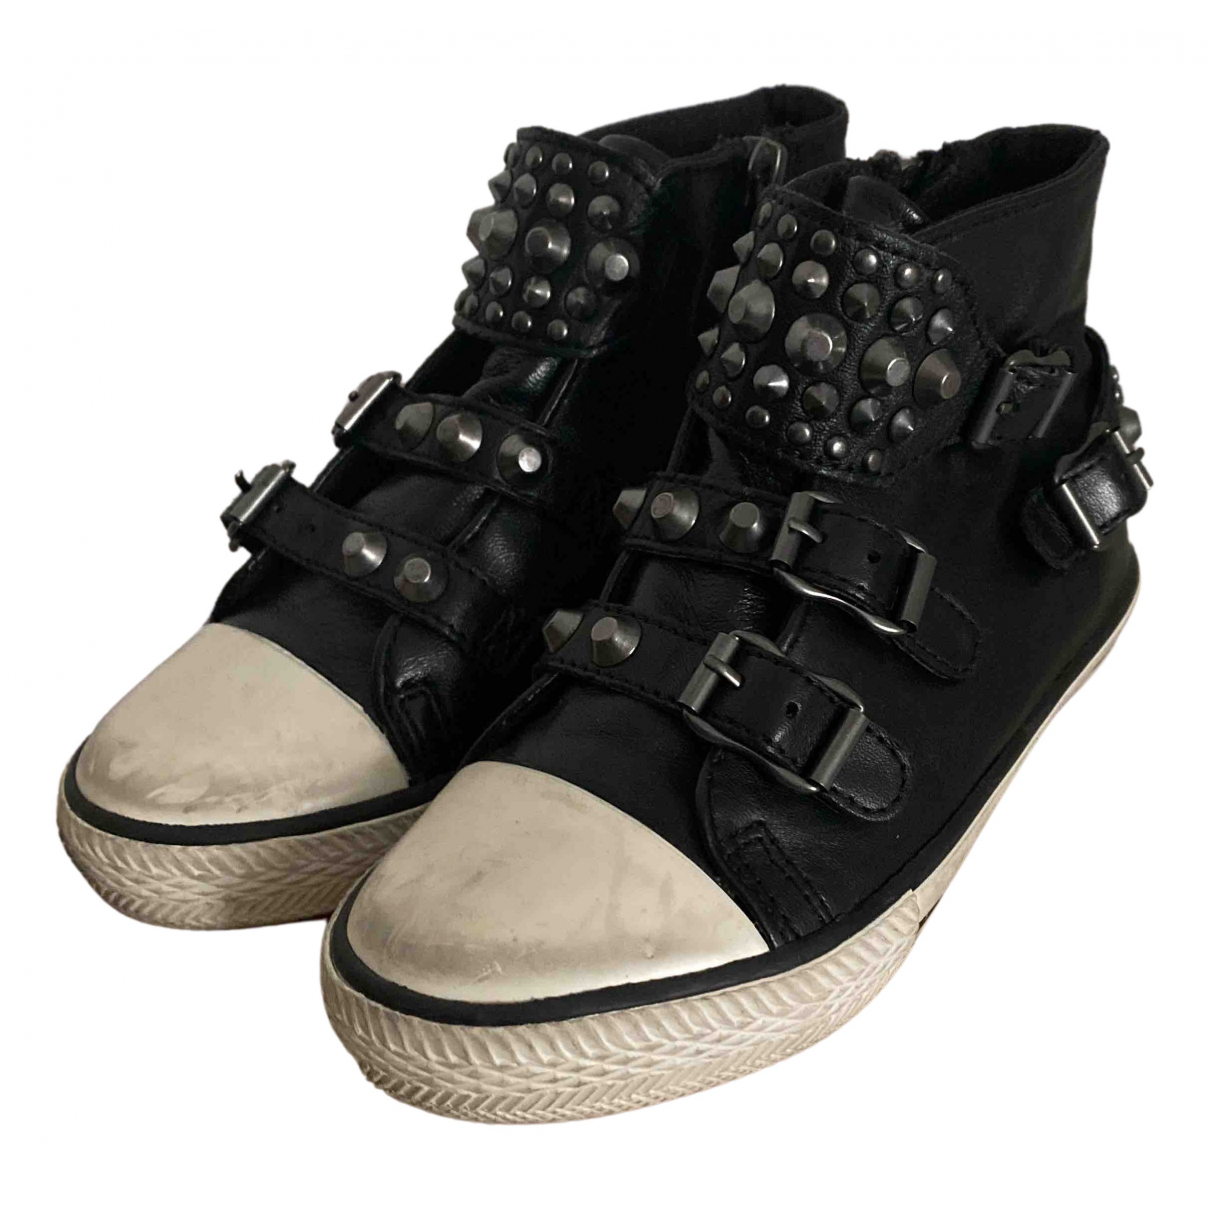 Ash N Black Leather Trainers for Kids 29 FR